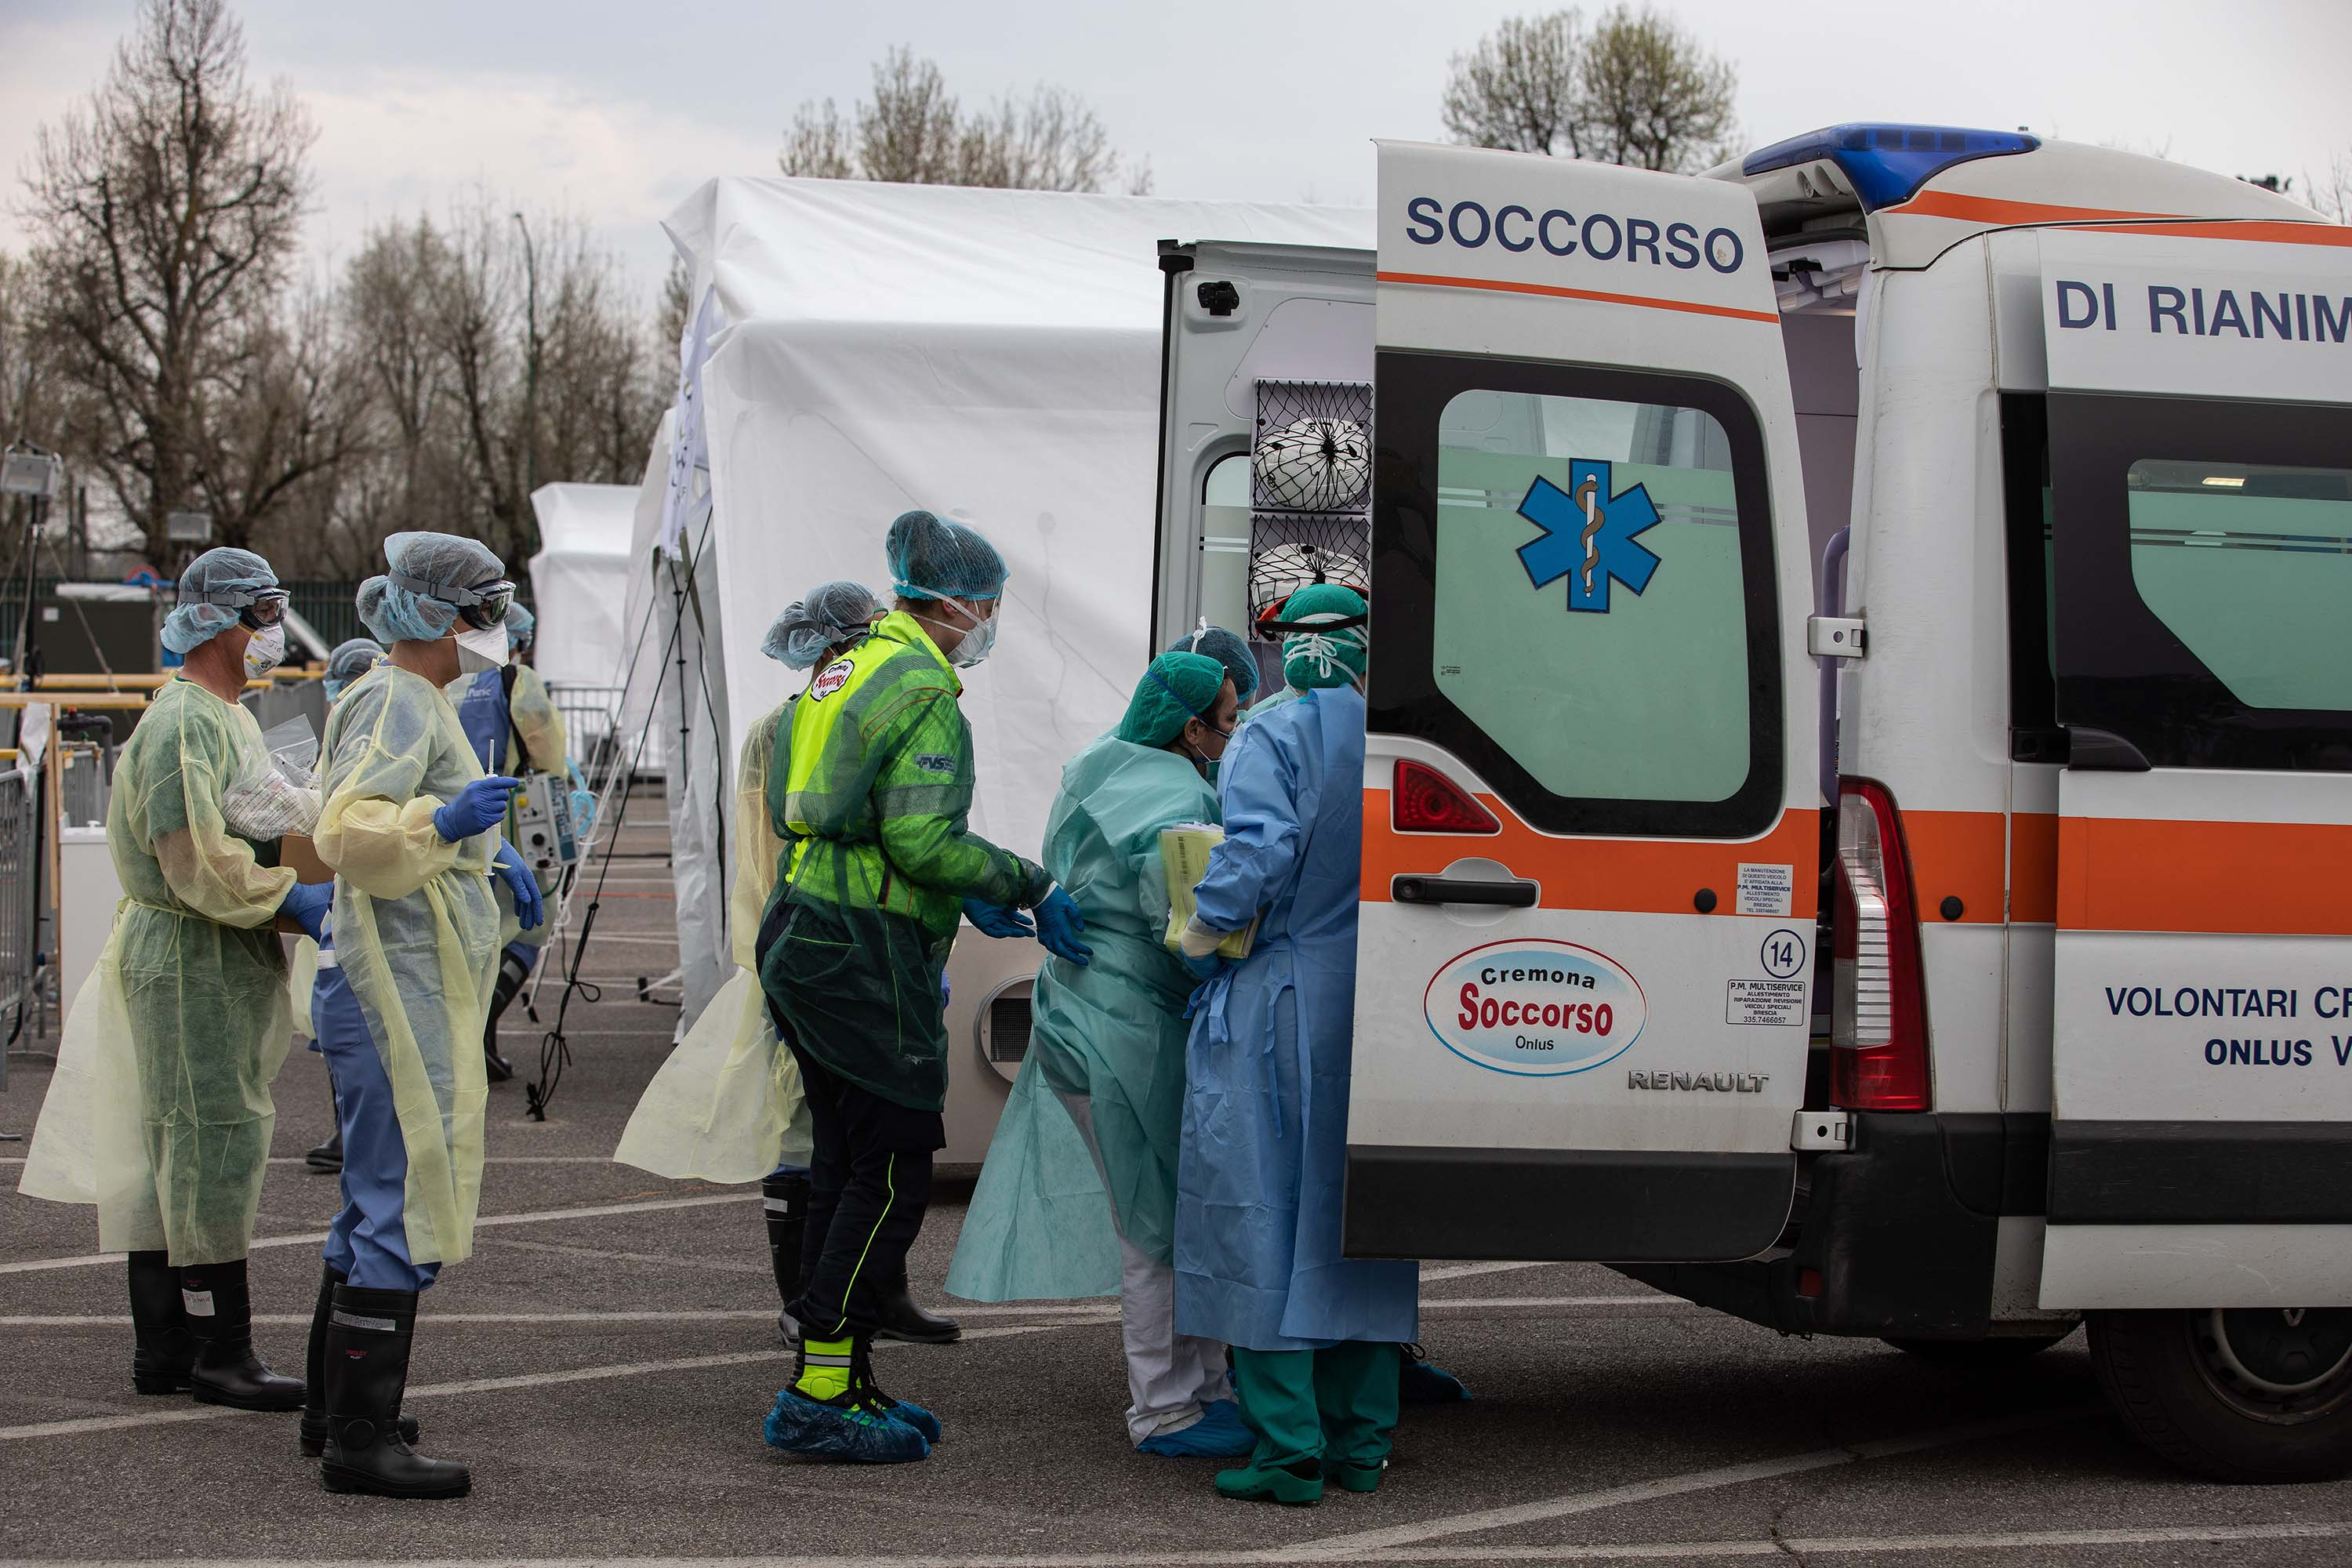 Medical personnel transport a coronavirus patient to a field hospital in Cremona, Italy, on March 20.